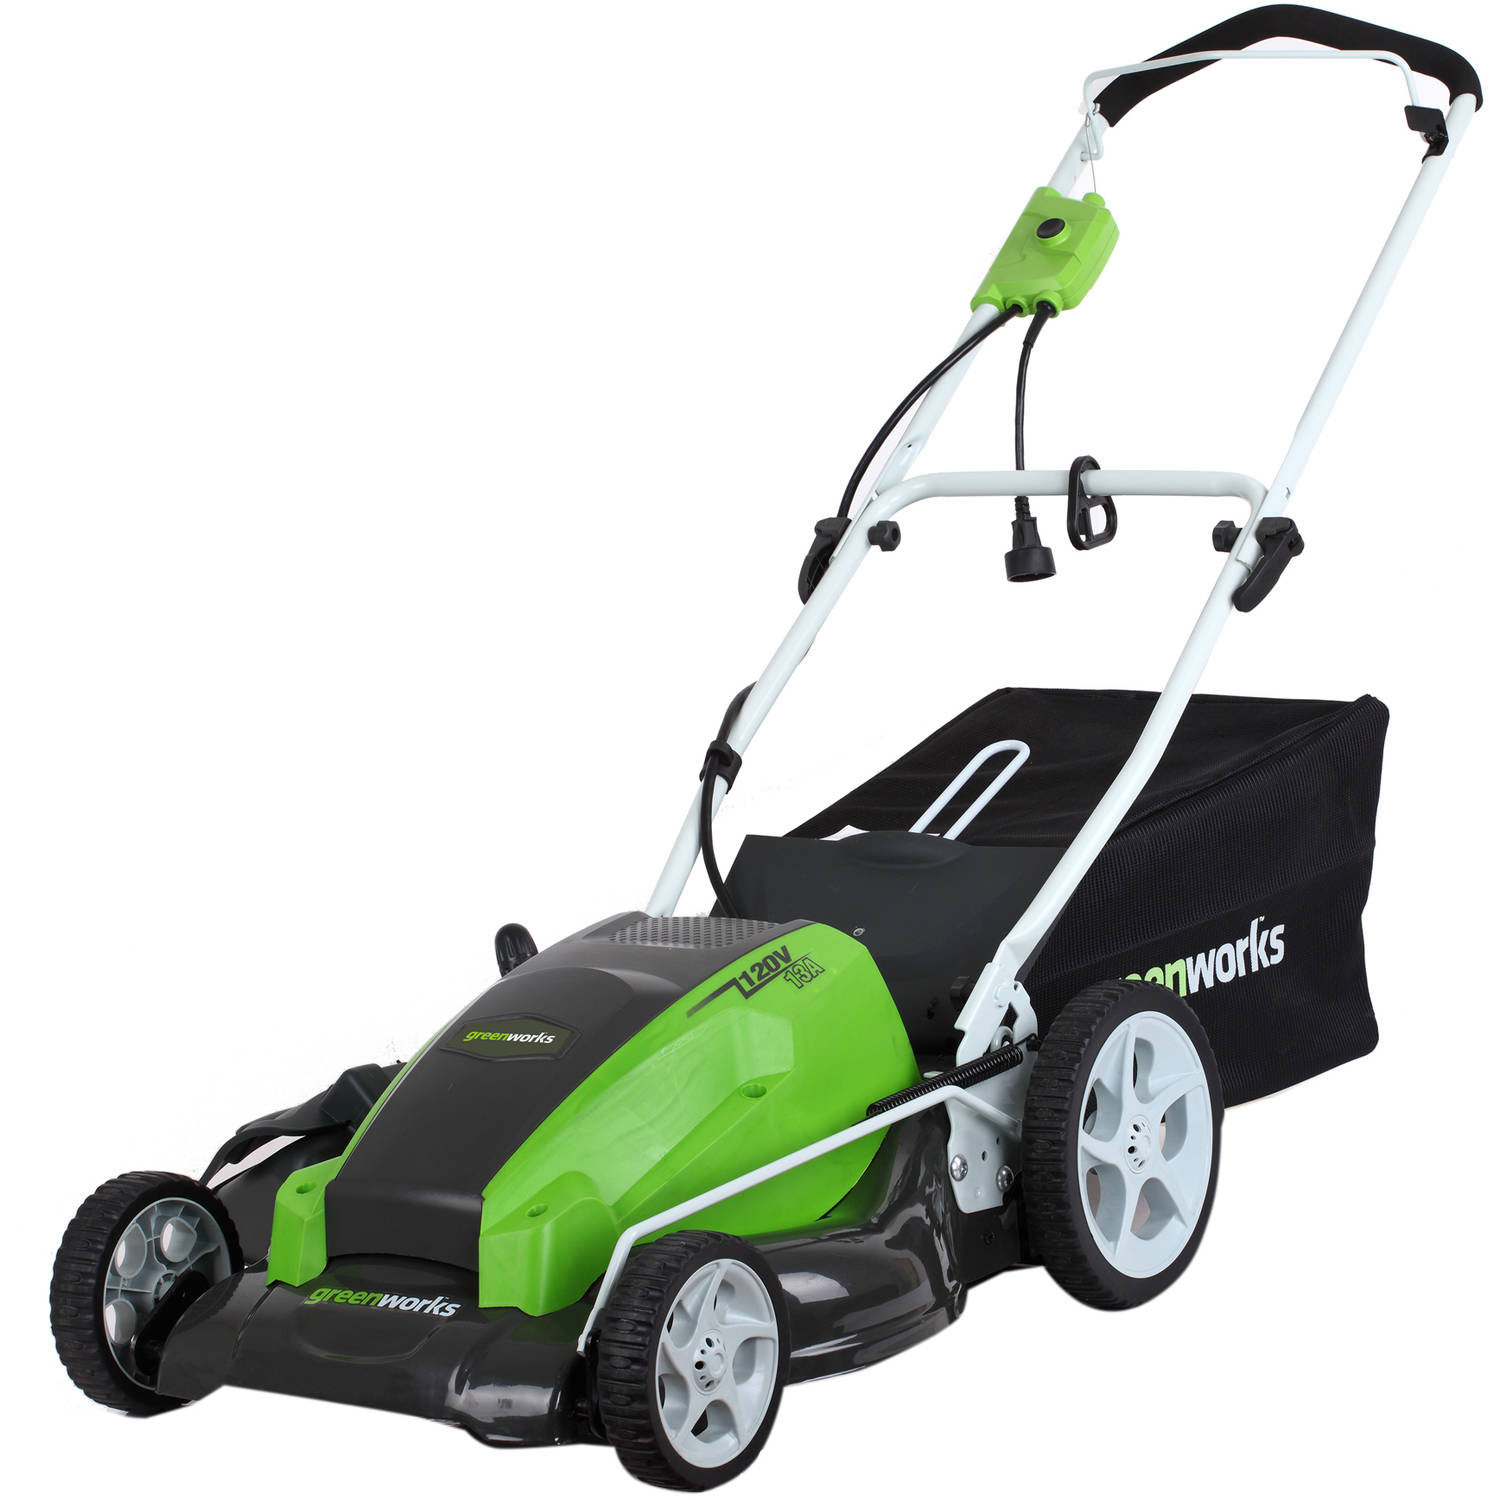 "Greenworks 120V 21"" Electric Lawn Mower, Green"